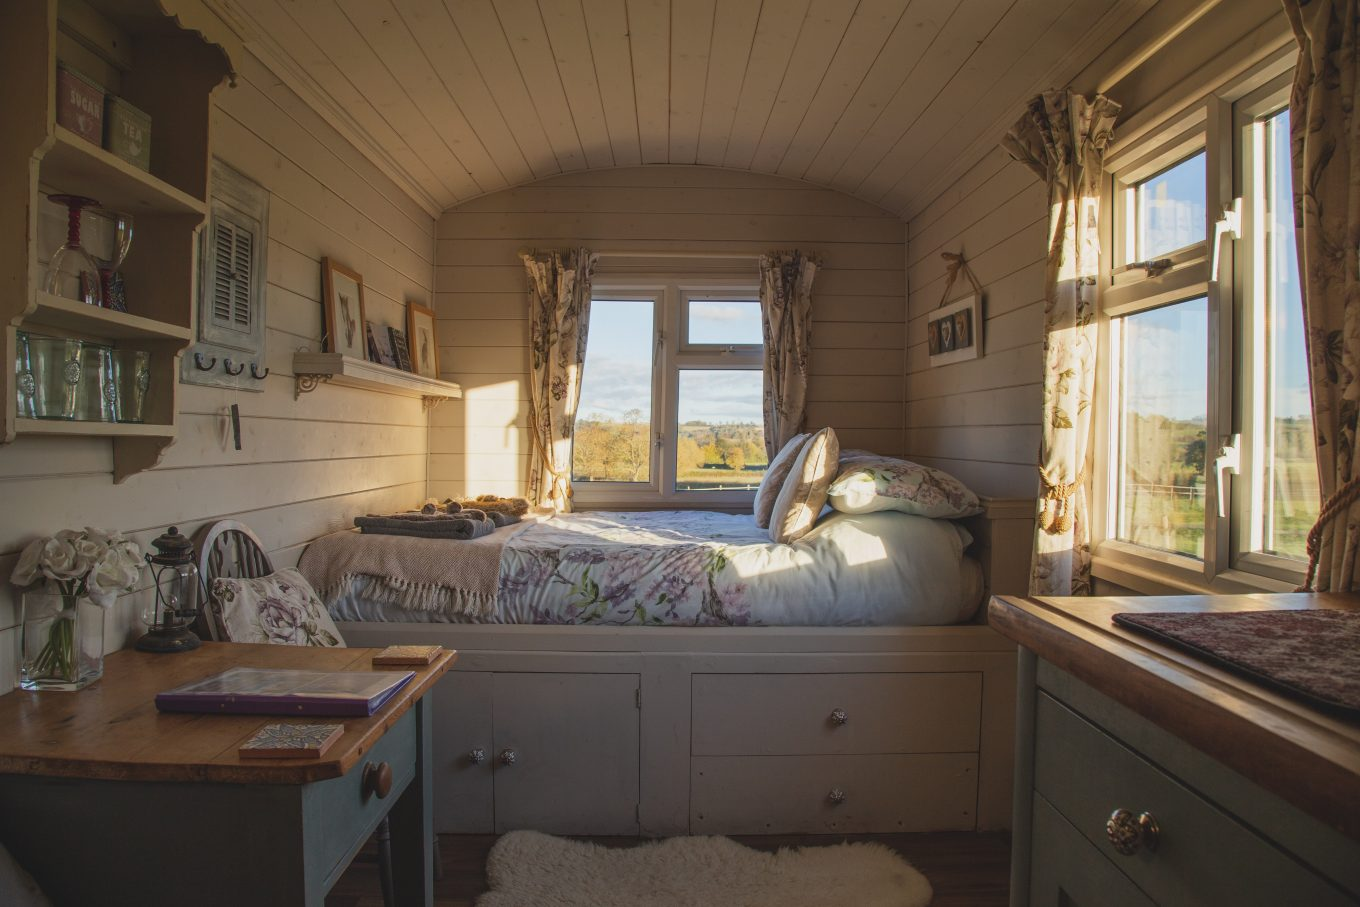 empty bed beside windows during daytime